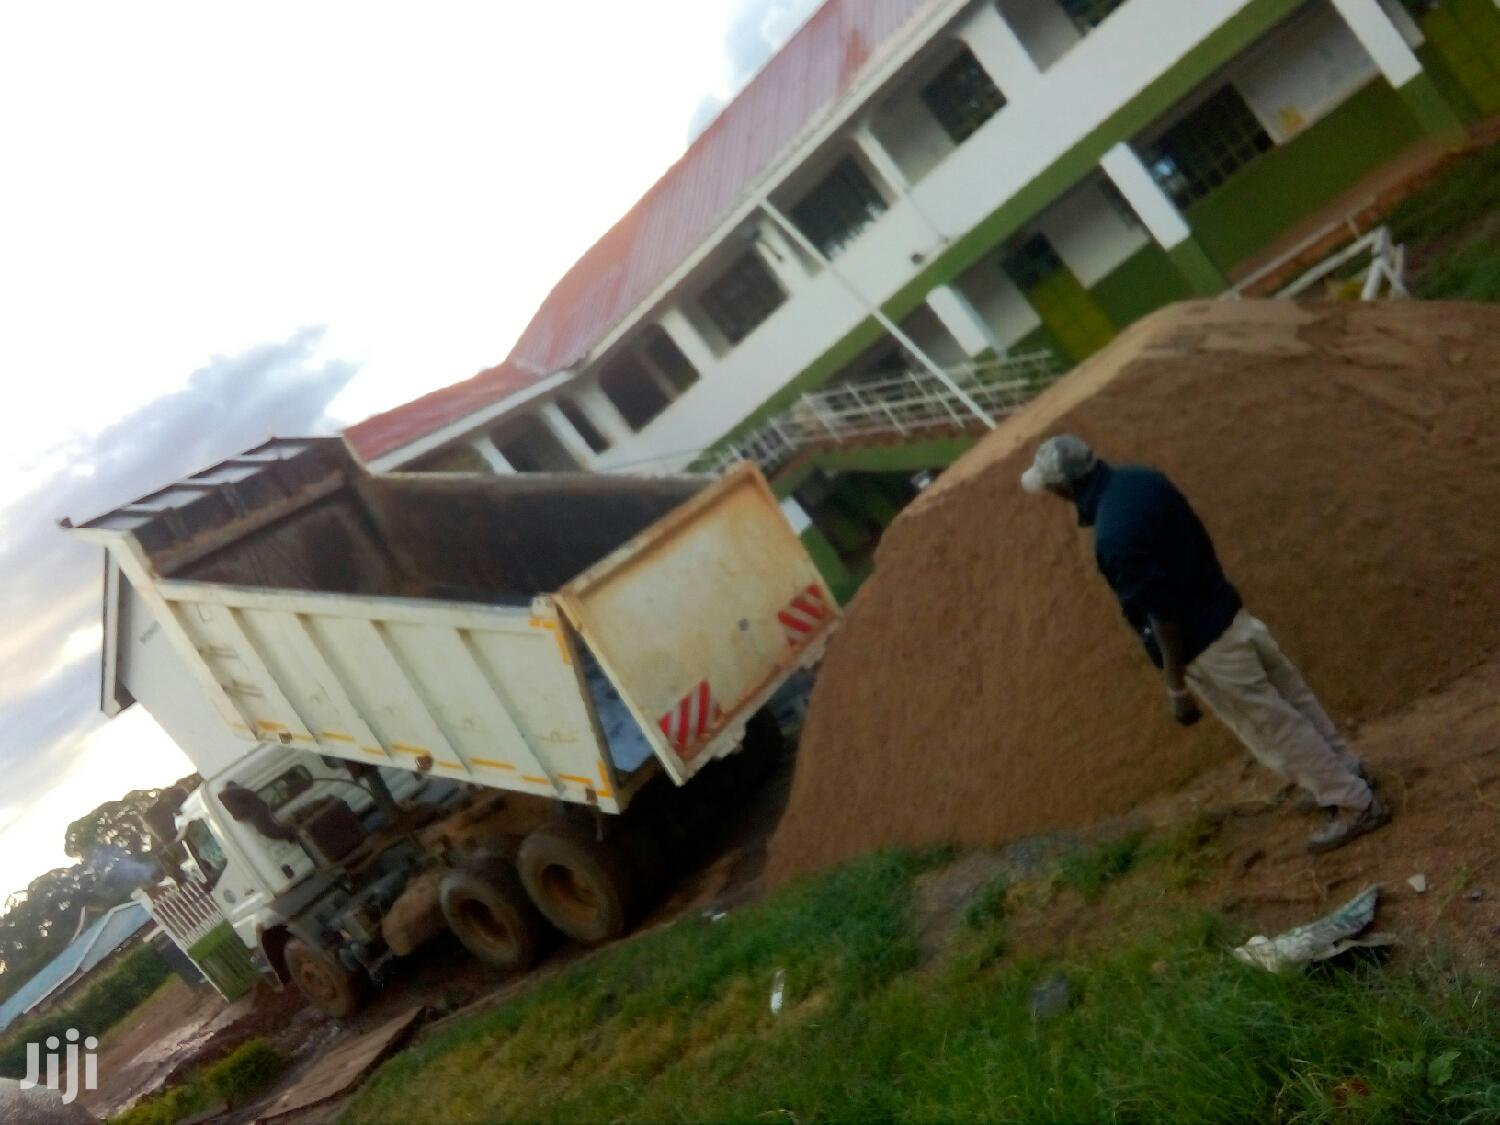 Dfre Building Materials Supplier   Building Materials for sale in Kitale, Trans-Nzoia, Kenya